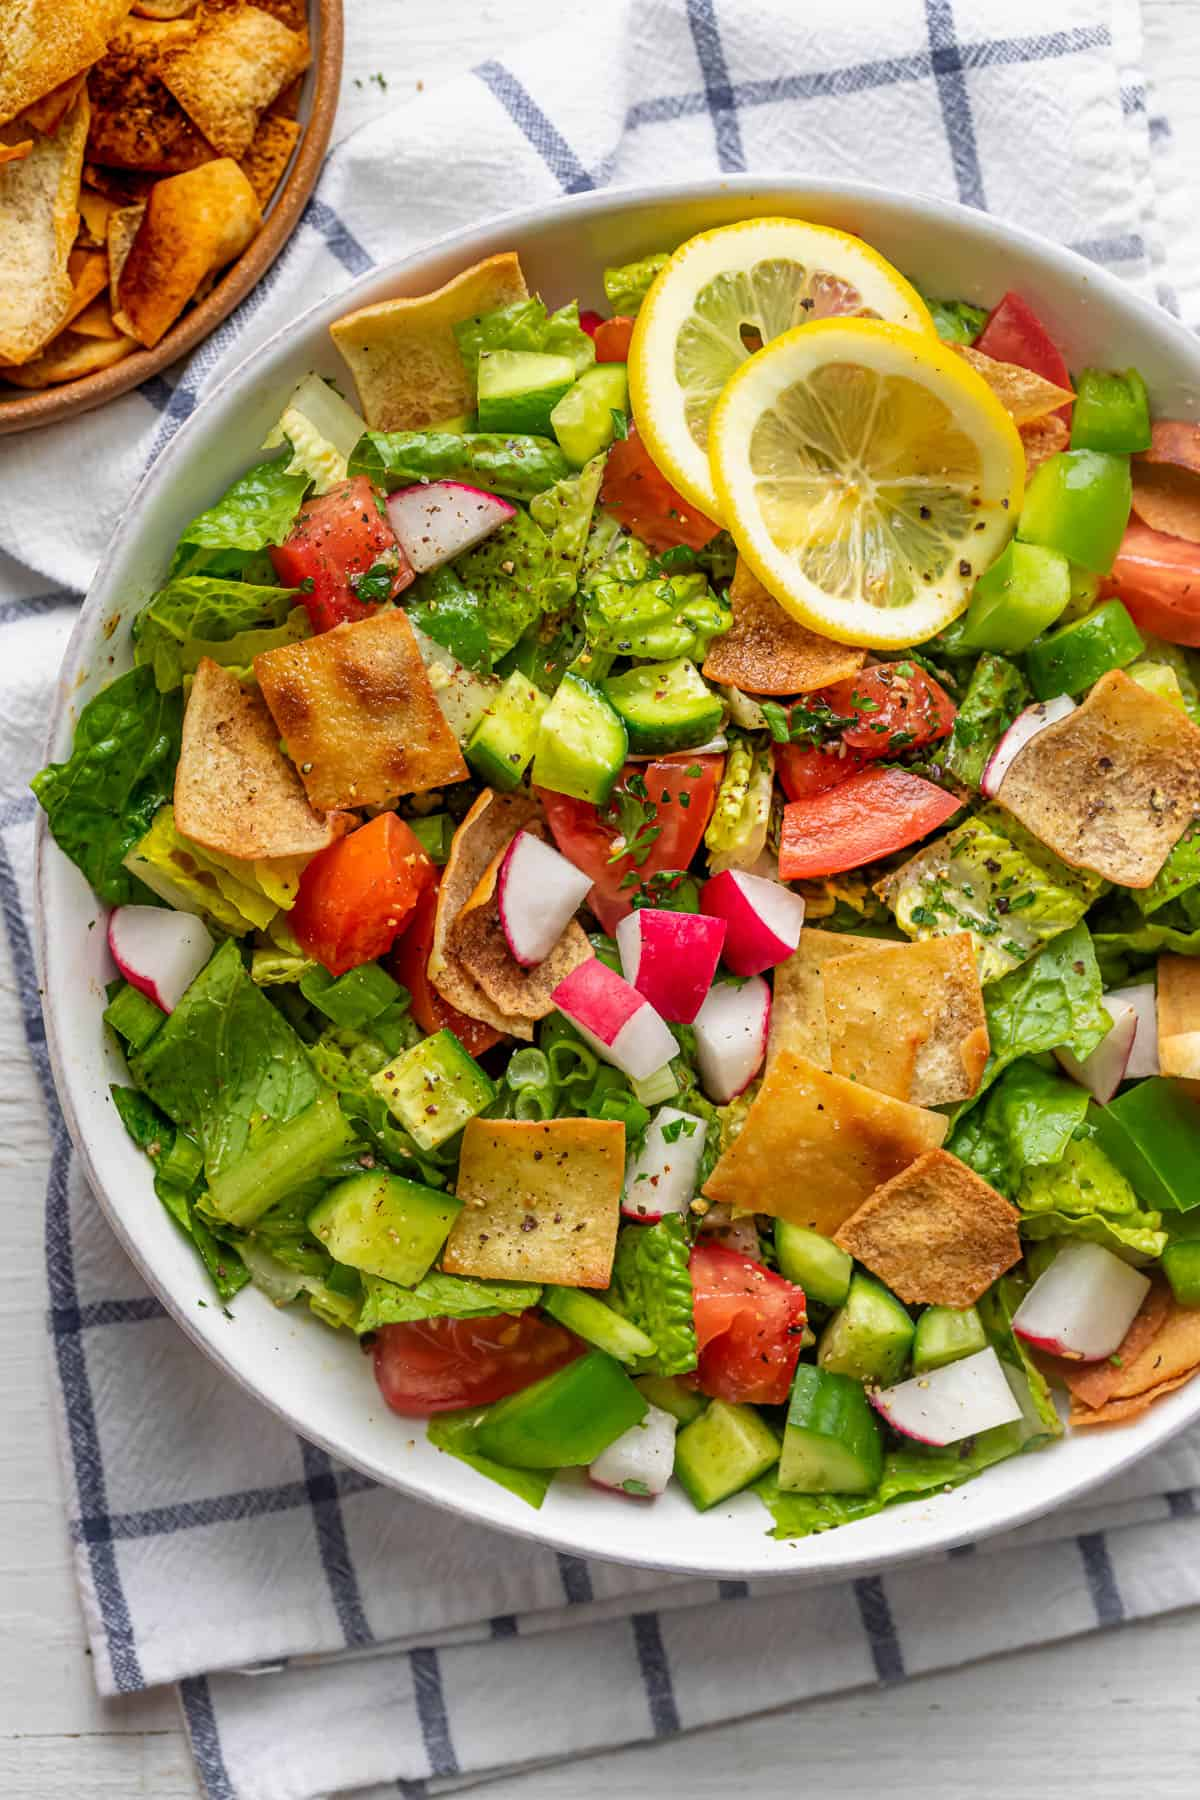 Large bowl of Lebanese Fattoush Salad on a marble background. Salad includes lettuce, tomatoes, parsley, cucumbers, green peppers, radishes, green onions and fried pita bread.